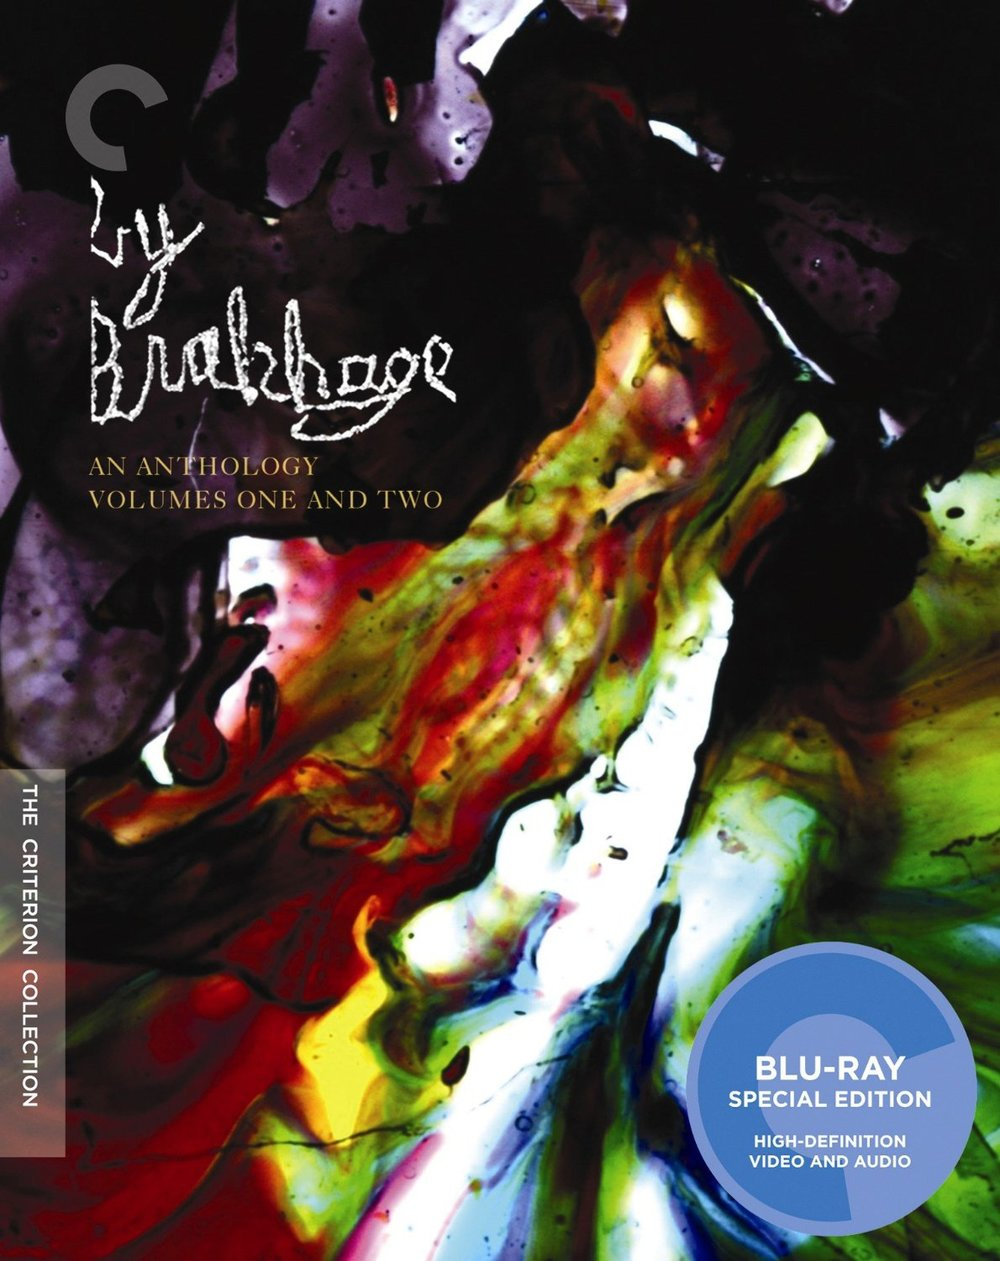 By Brakhage: An Anthology, Vol. 1 & 2 (The Criterion Collection) Amazon (Blu-ray)